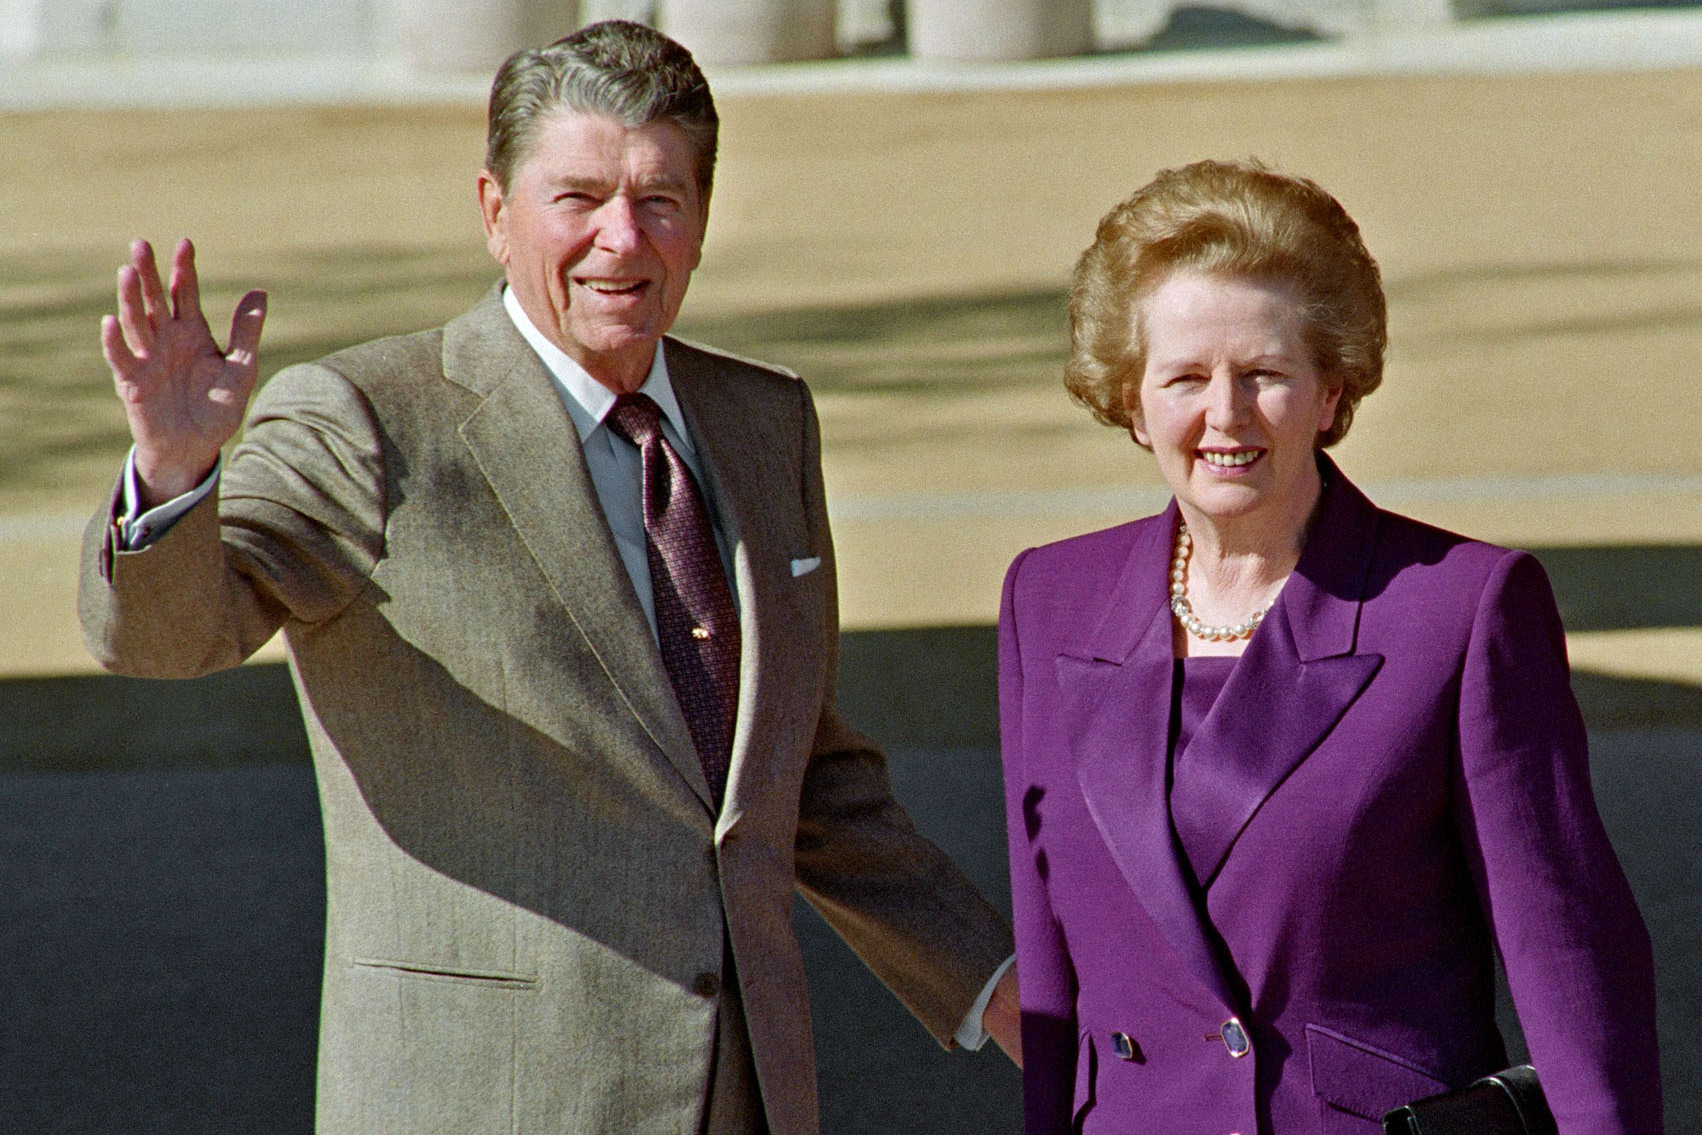 Former U.S. President Ronald Reagan waves as he greets next to former British Prime Minister Margaret Thatcher as she arrives to visit him at Reagan Library, on February 4, 1991.